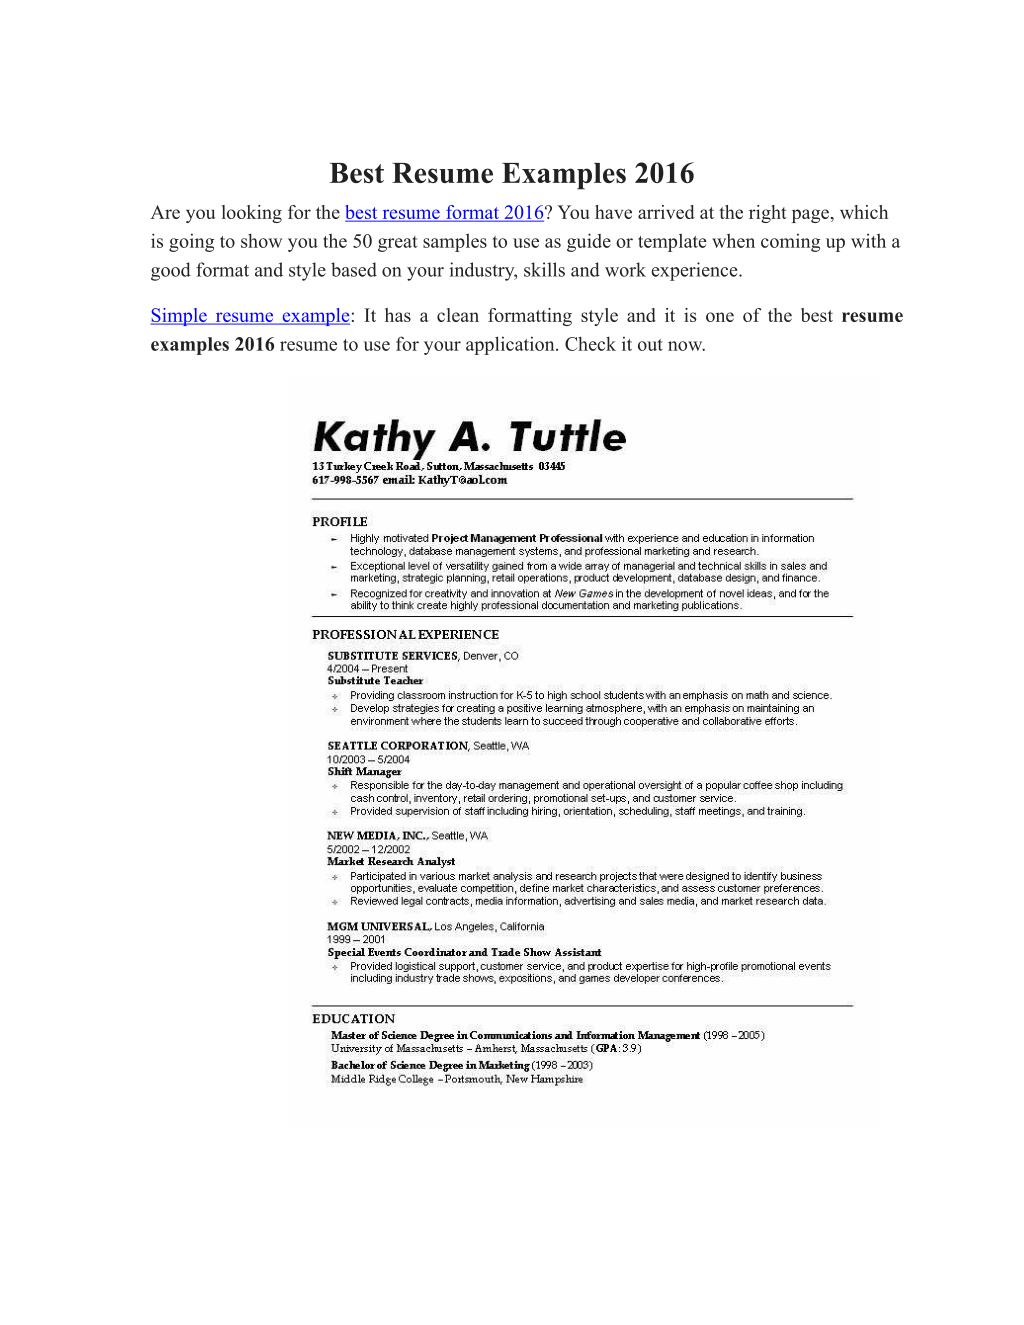 Ppt Best Resume Examples 2016 Powerpoint Presentation Id7284828